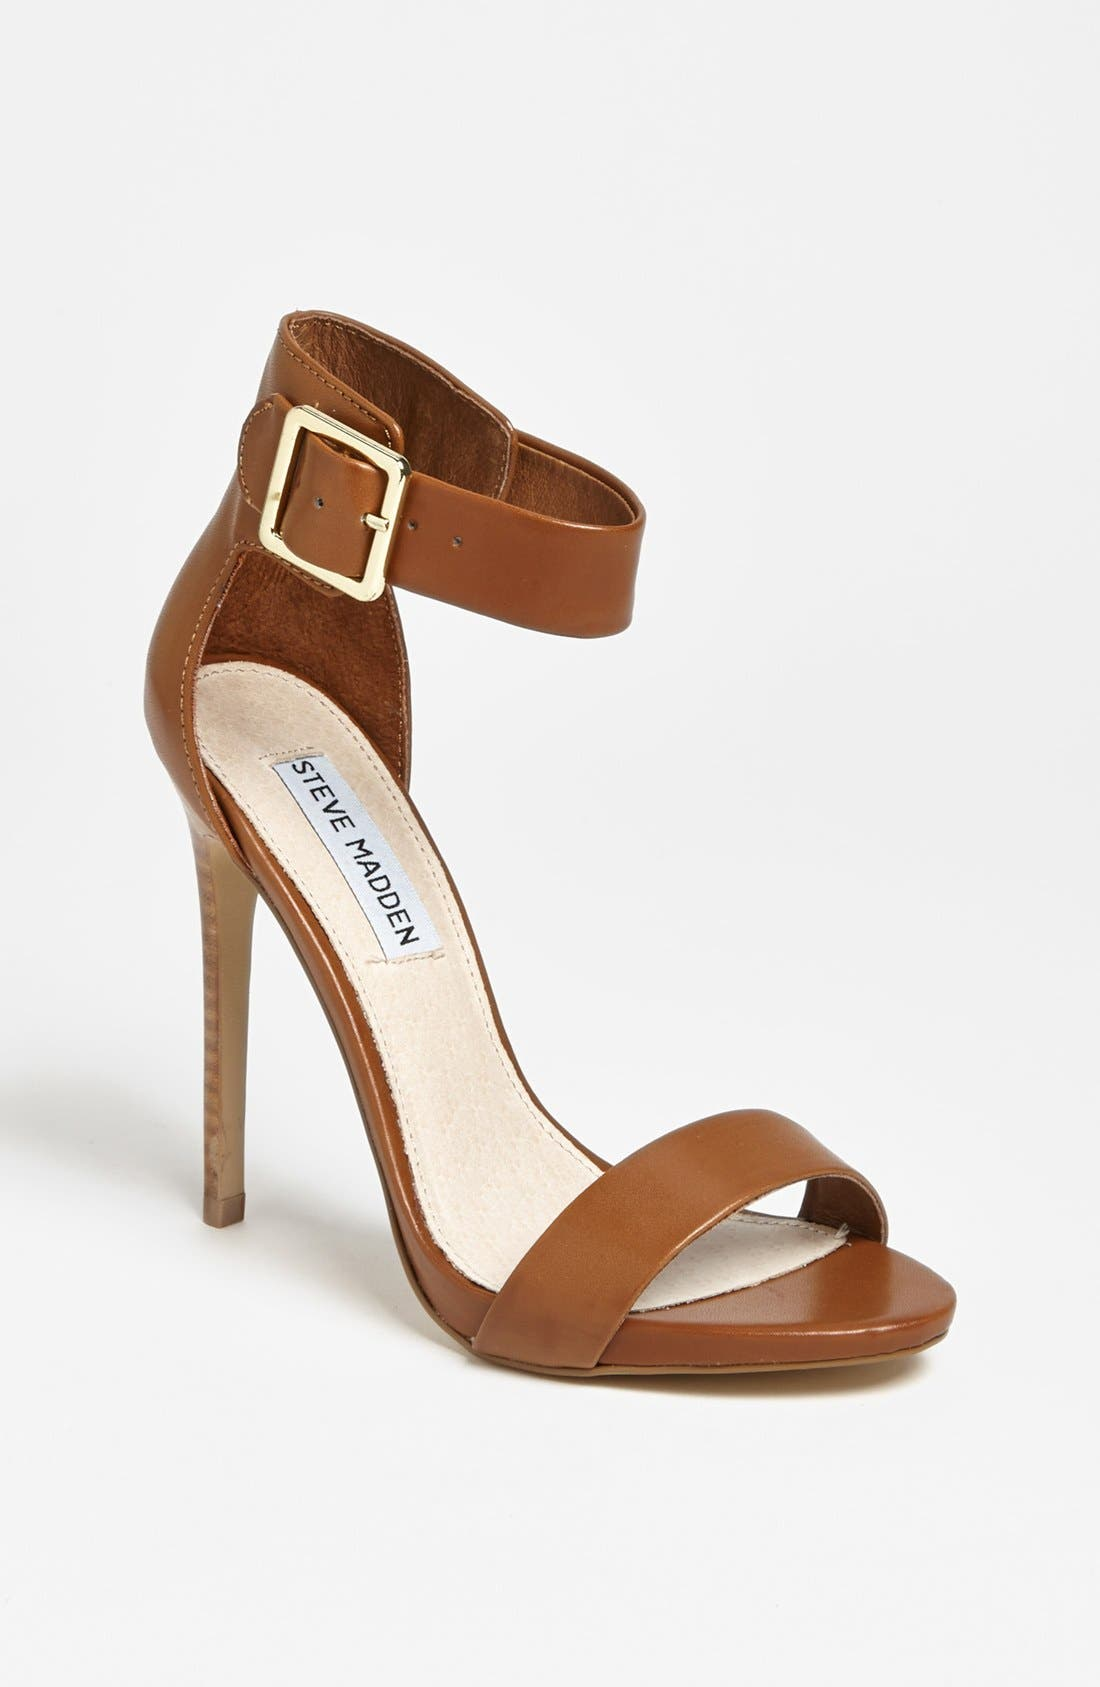 Alternate Image 1 Selected - Steve Madden 'Marlenee' Sandal